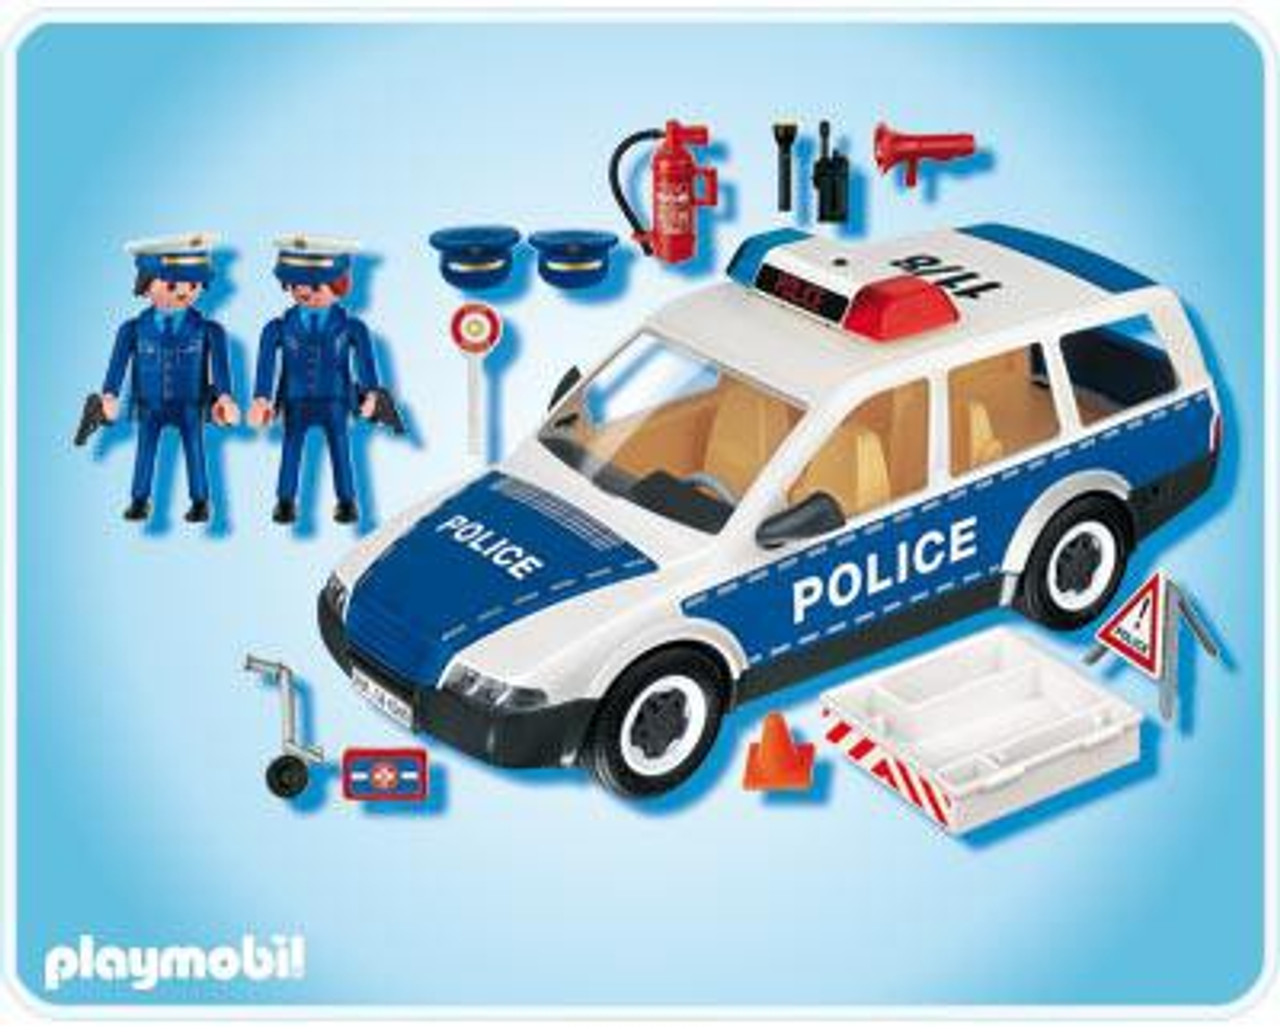 playmobil police patrol car set 4260 - Playmobile Police